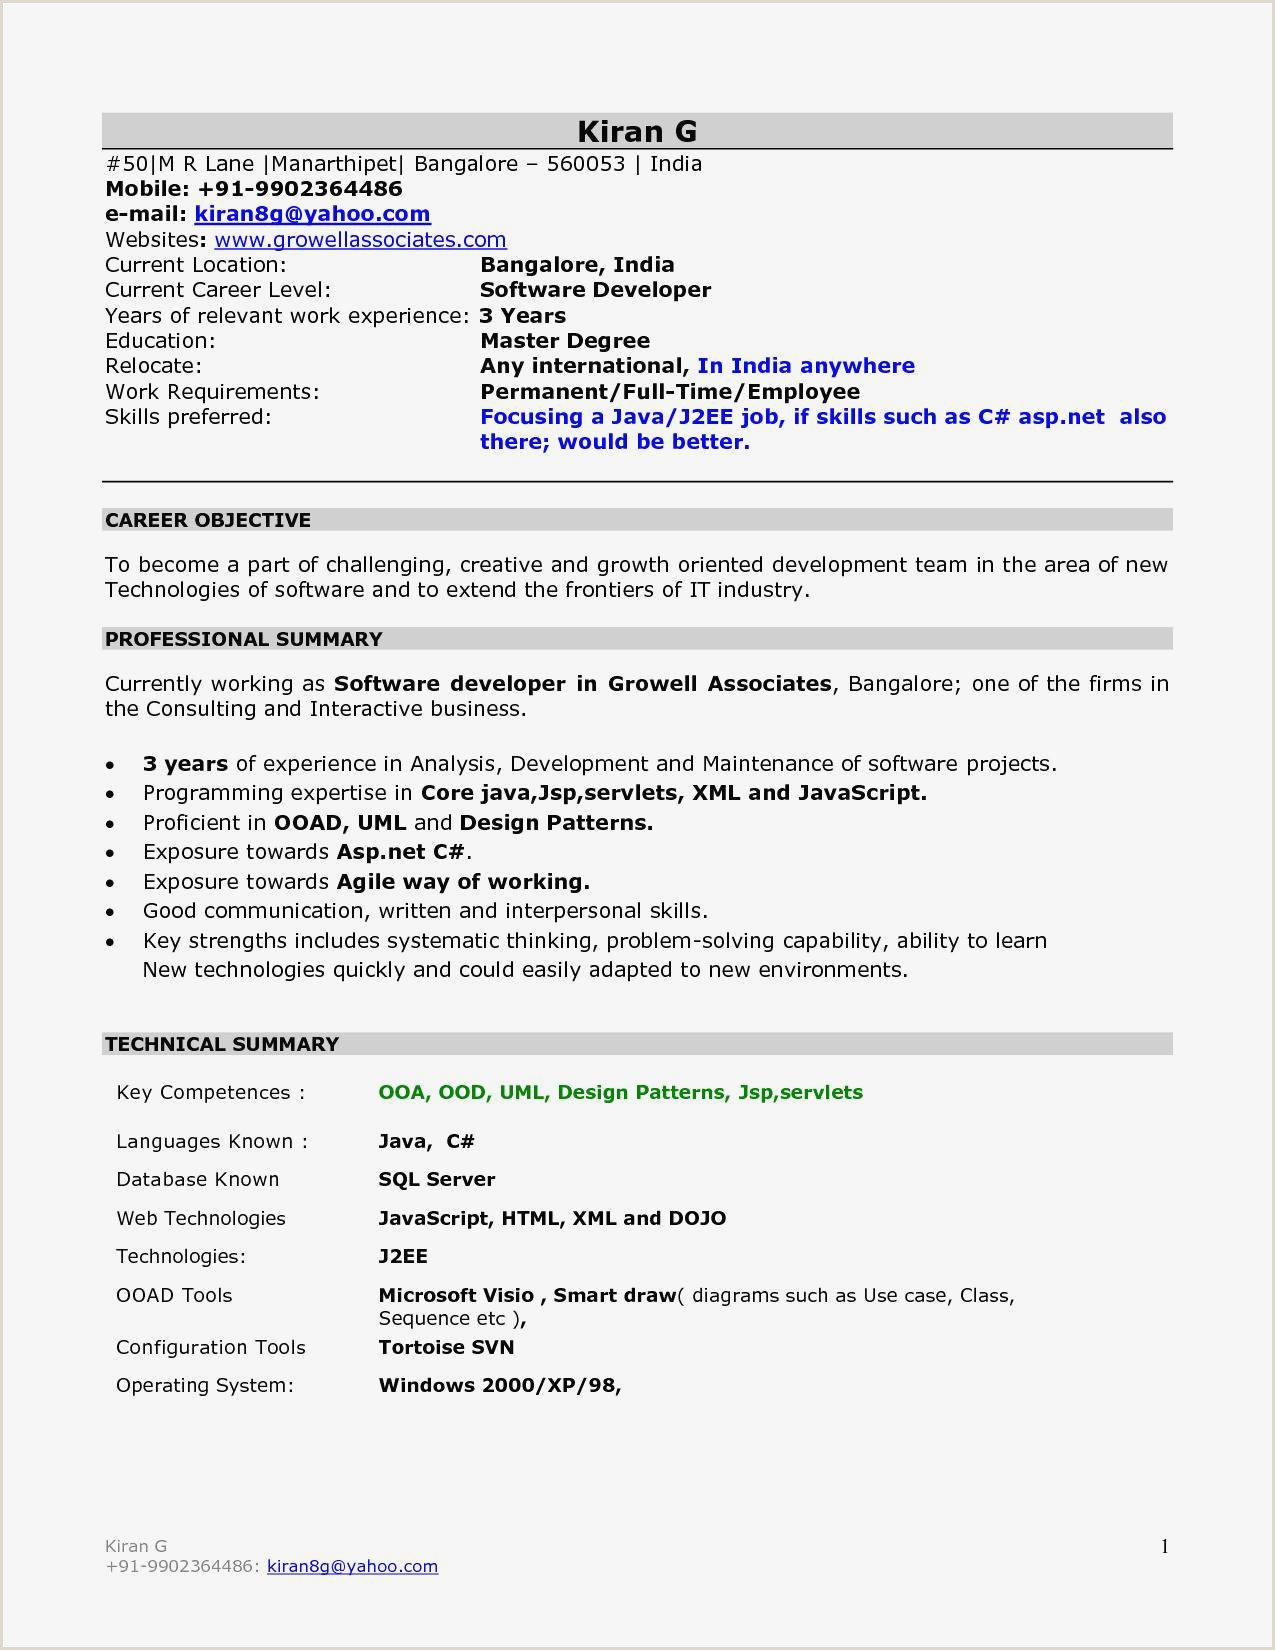 Fresher Resume Format For B.tech Ece Free Download Cv Vierge Meilleur De Resume Format For Freshers Mechanical